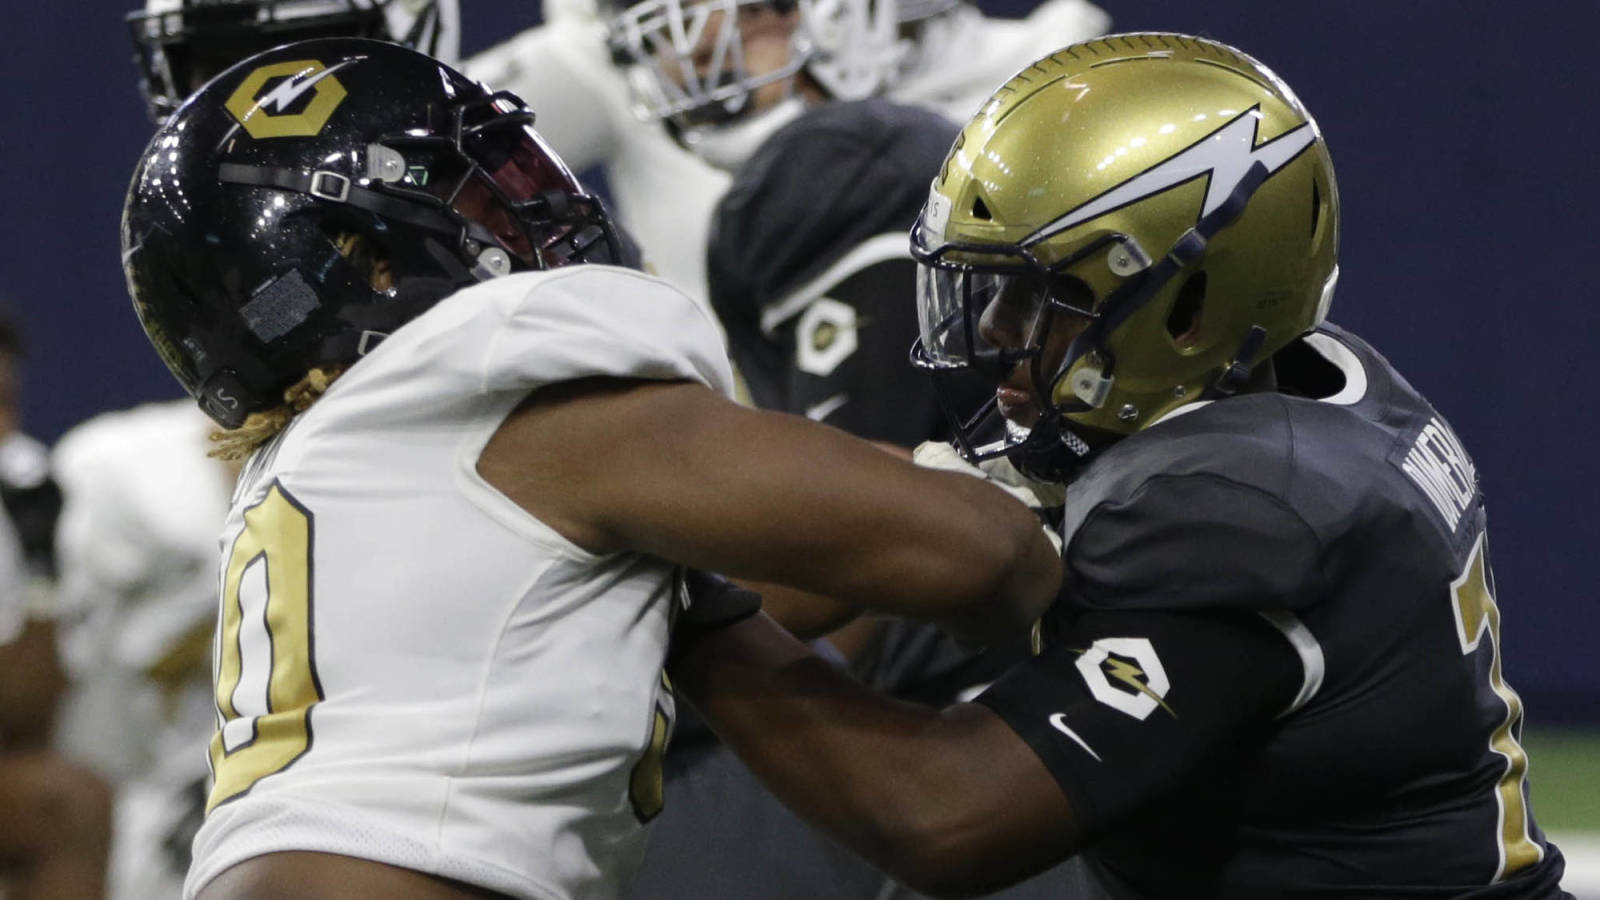 Report: Texas official has serious doubts about high school football season